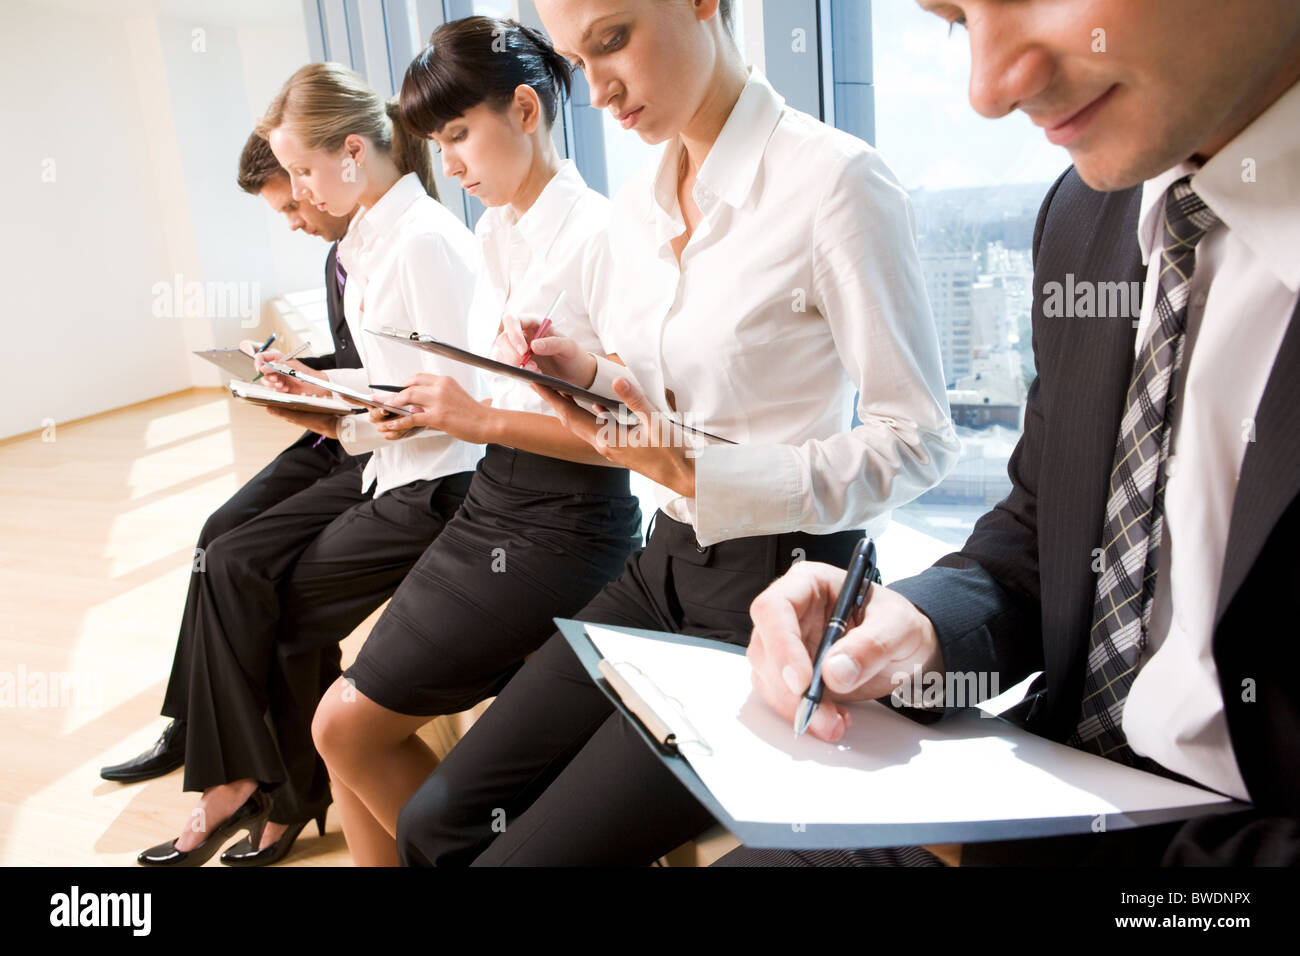 Image of row of business people writing on papers at seminar - Stock Image